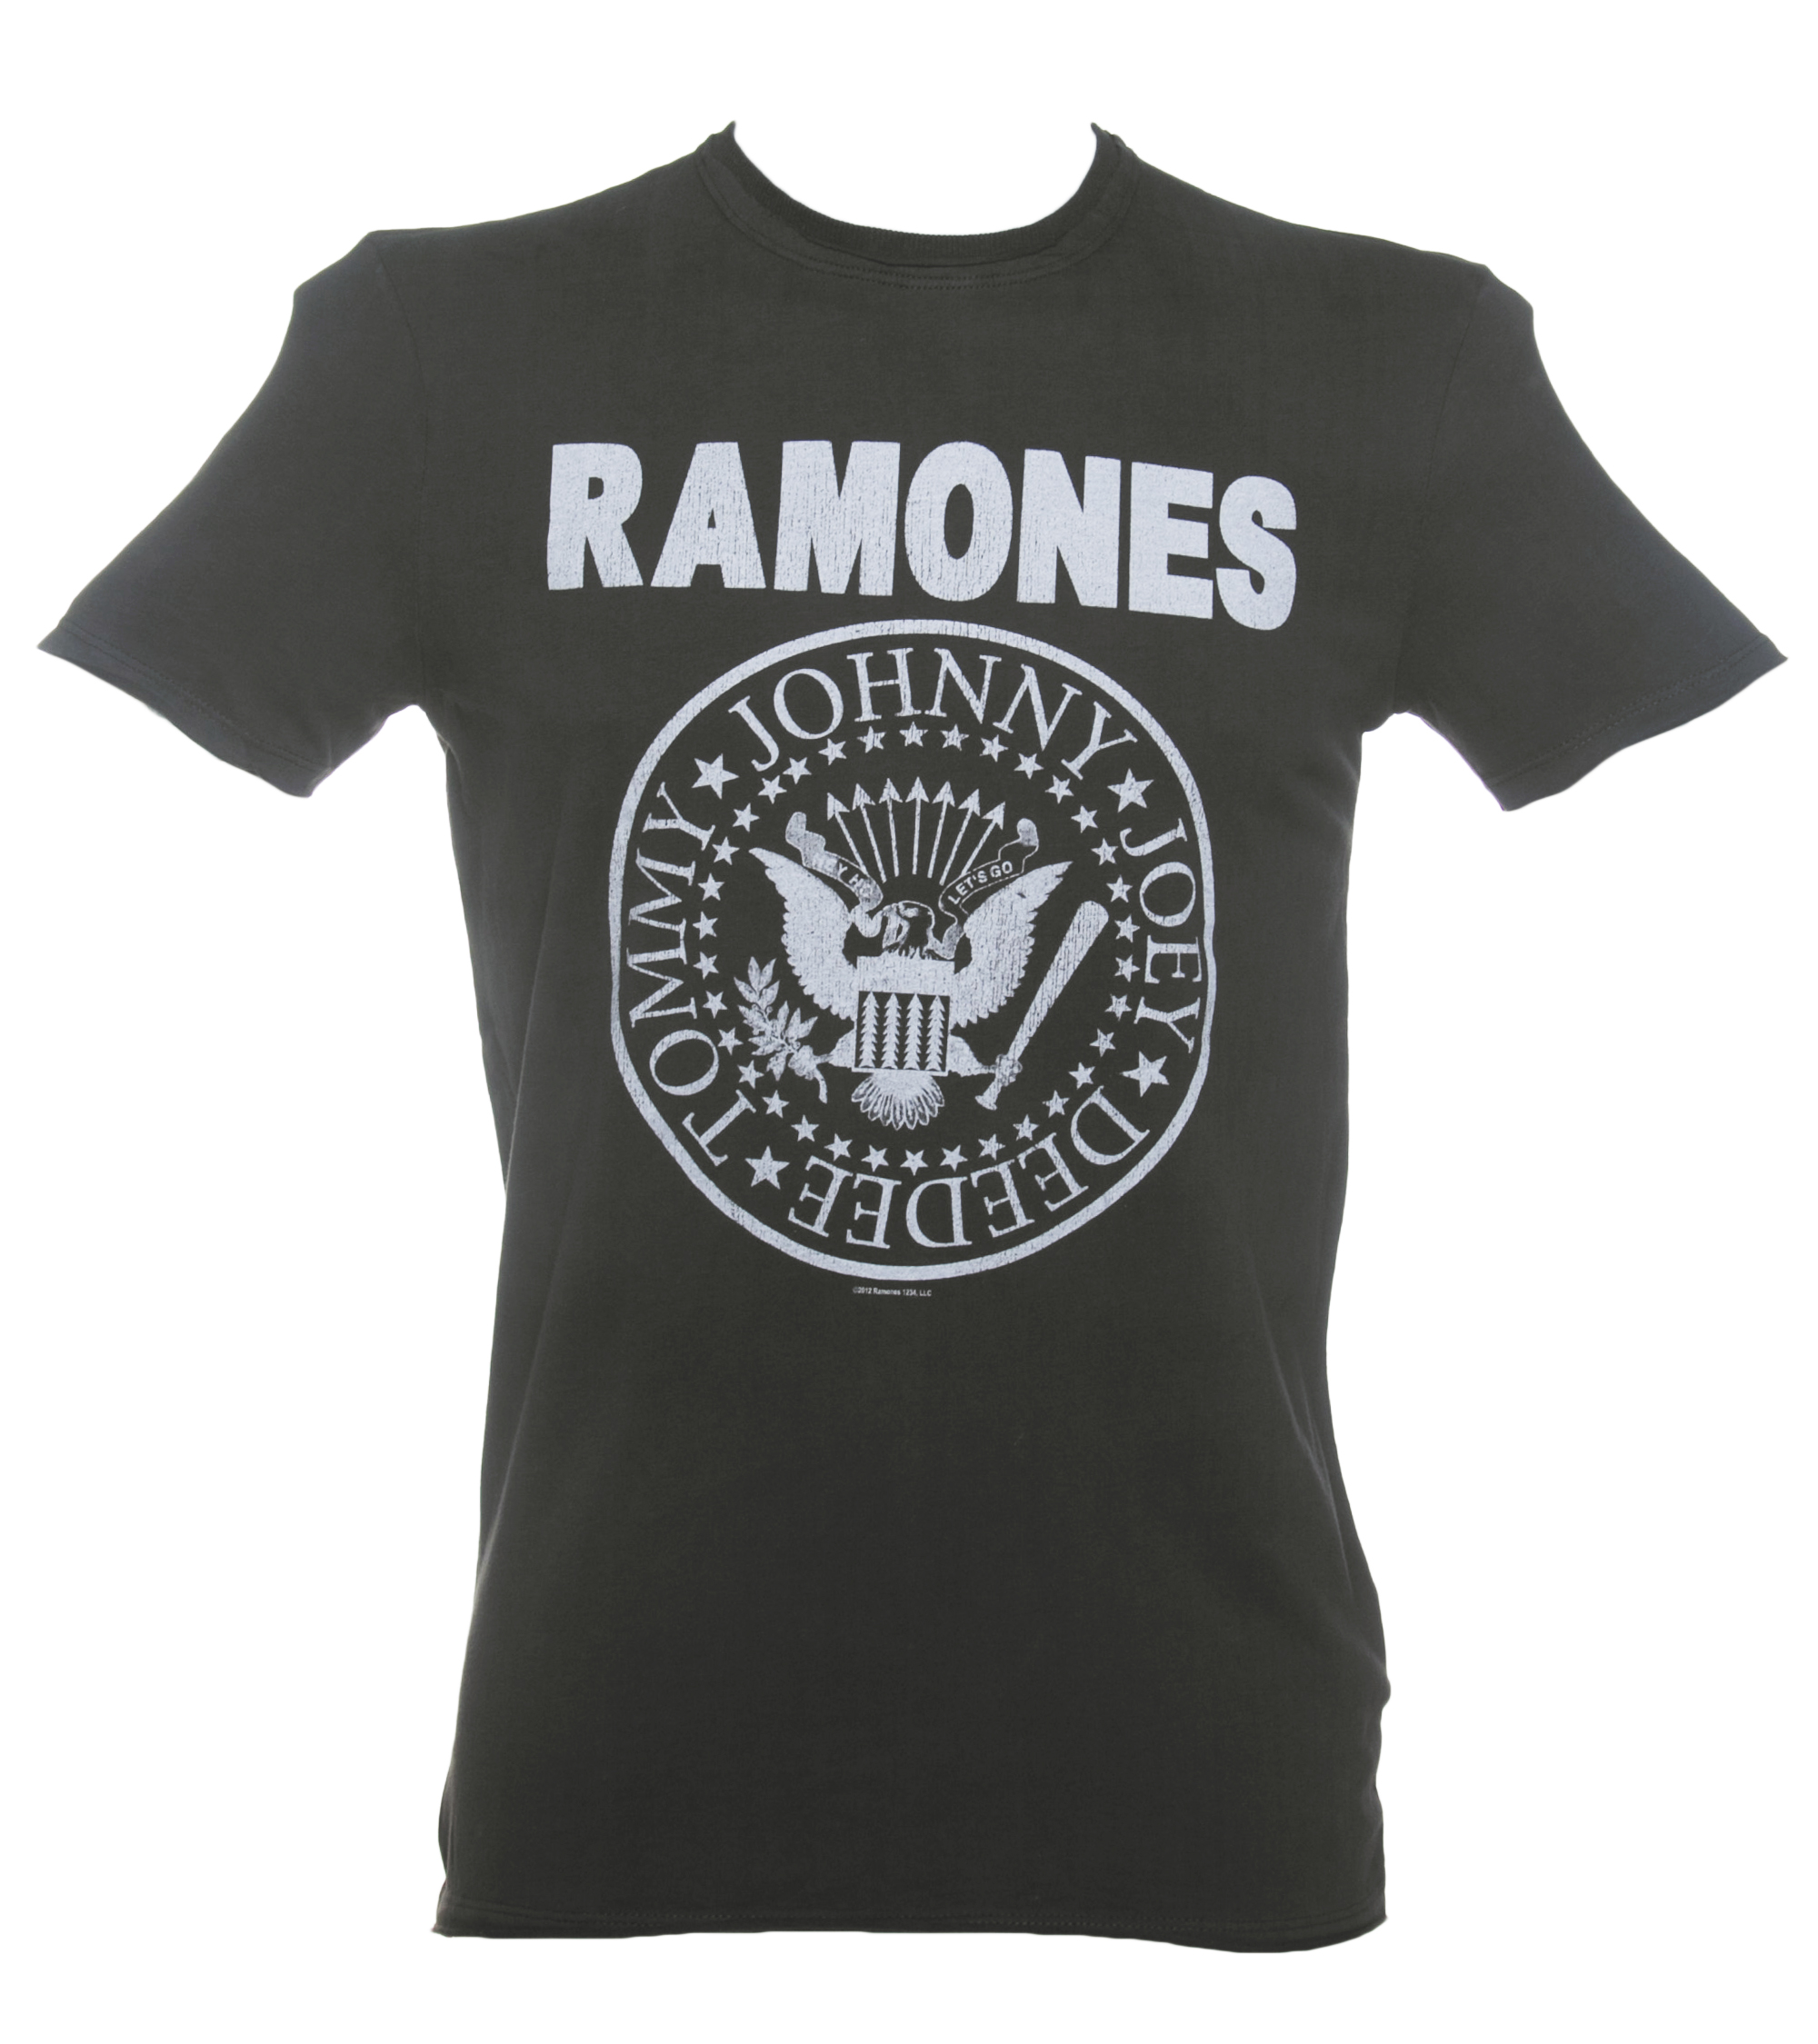 Ramones T-Shirts. The Ramones were a punk rock band that formed in in Queens, New York. The band members included Joey Ramone, Tommy Ramone, Dee Dee Ramone, and Johnny Ramone. All of the band members of the Ramones had the last name 'Ramone', but they were not related to one another. The name of the band was recommended by Dee Dee/5().